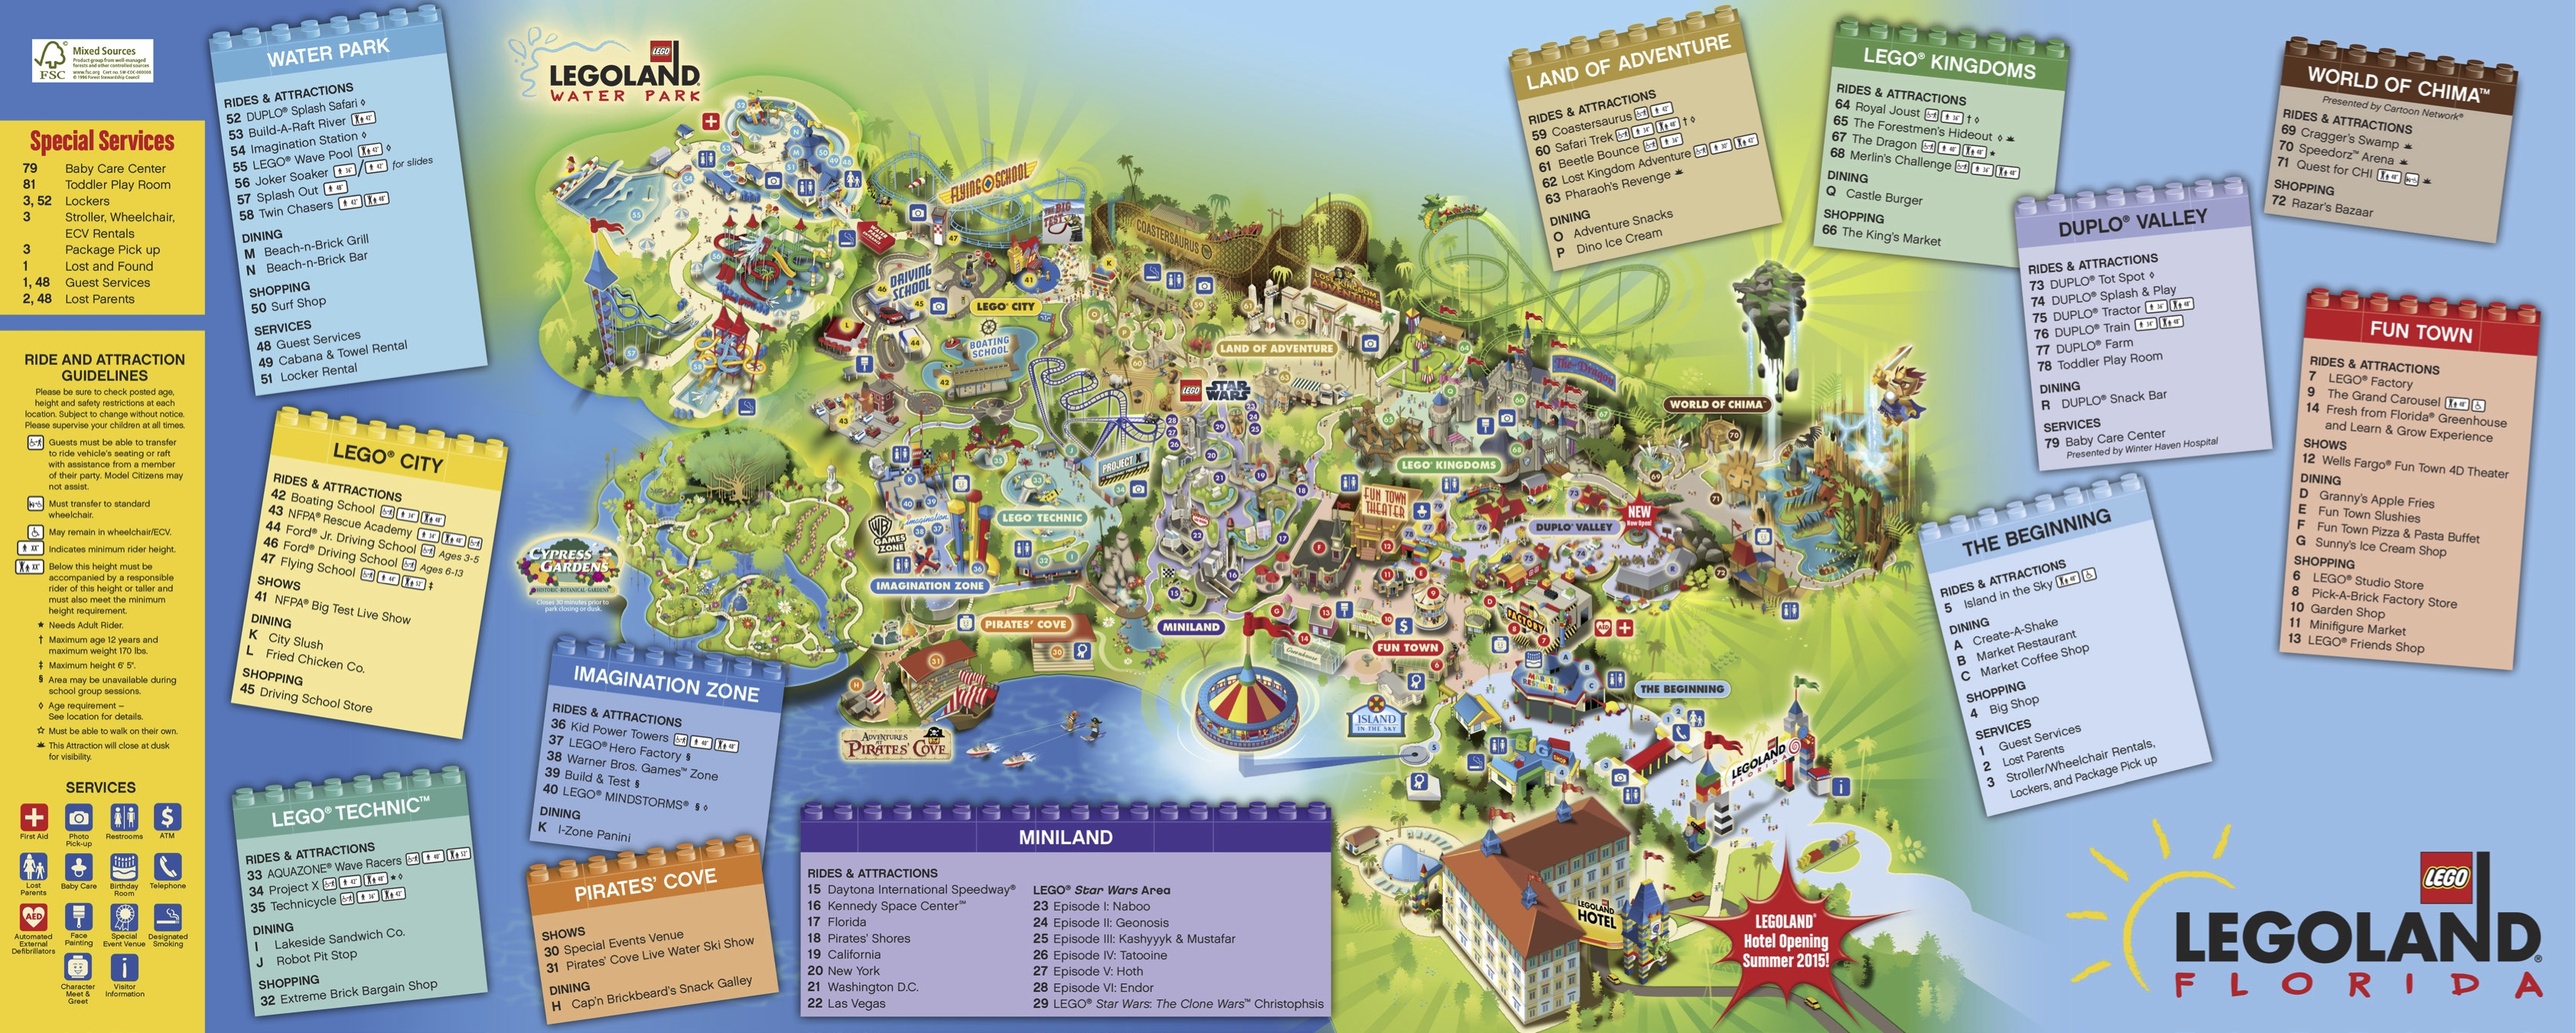 Exploring Places In The City – Listening And Viewing Activity | Y6 - Legoland Map California Pdf